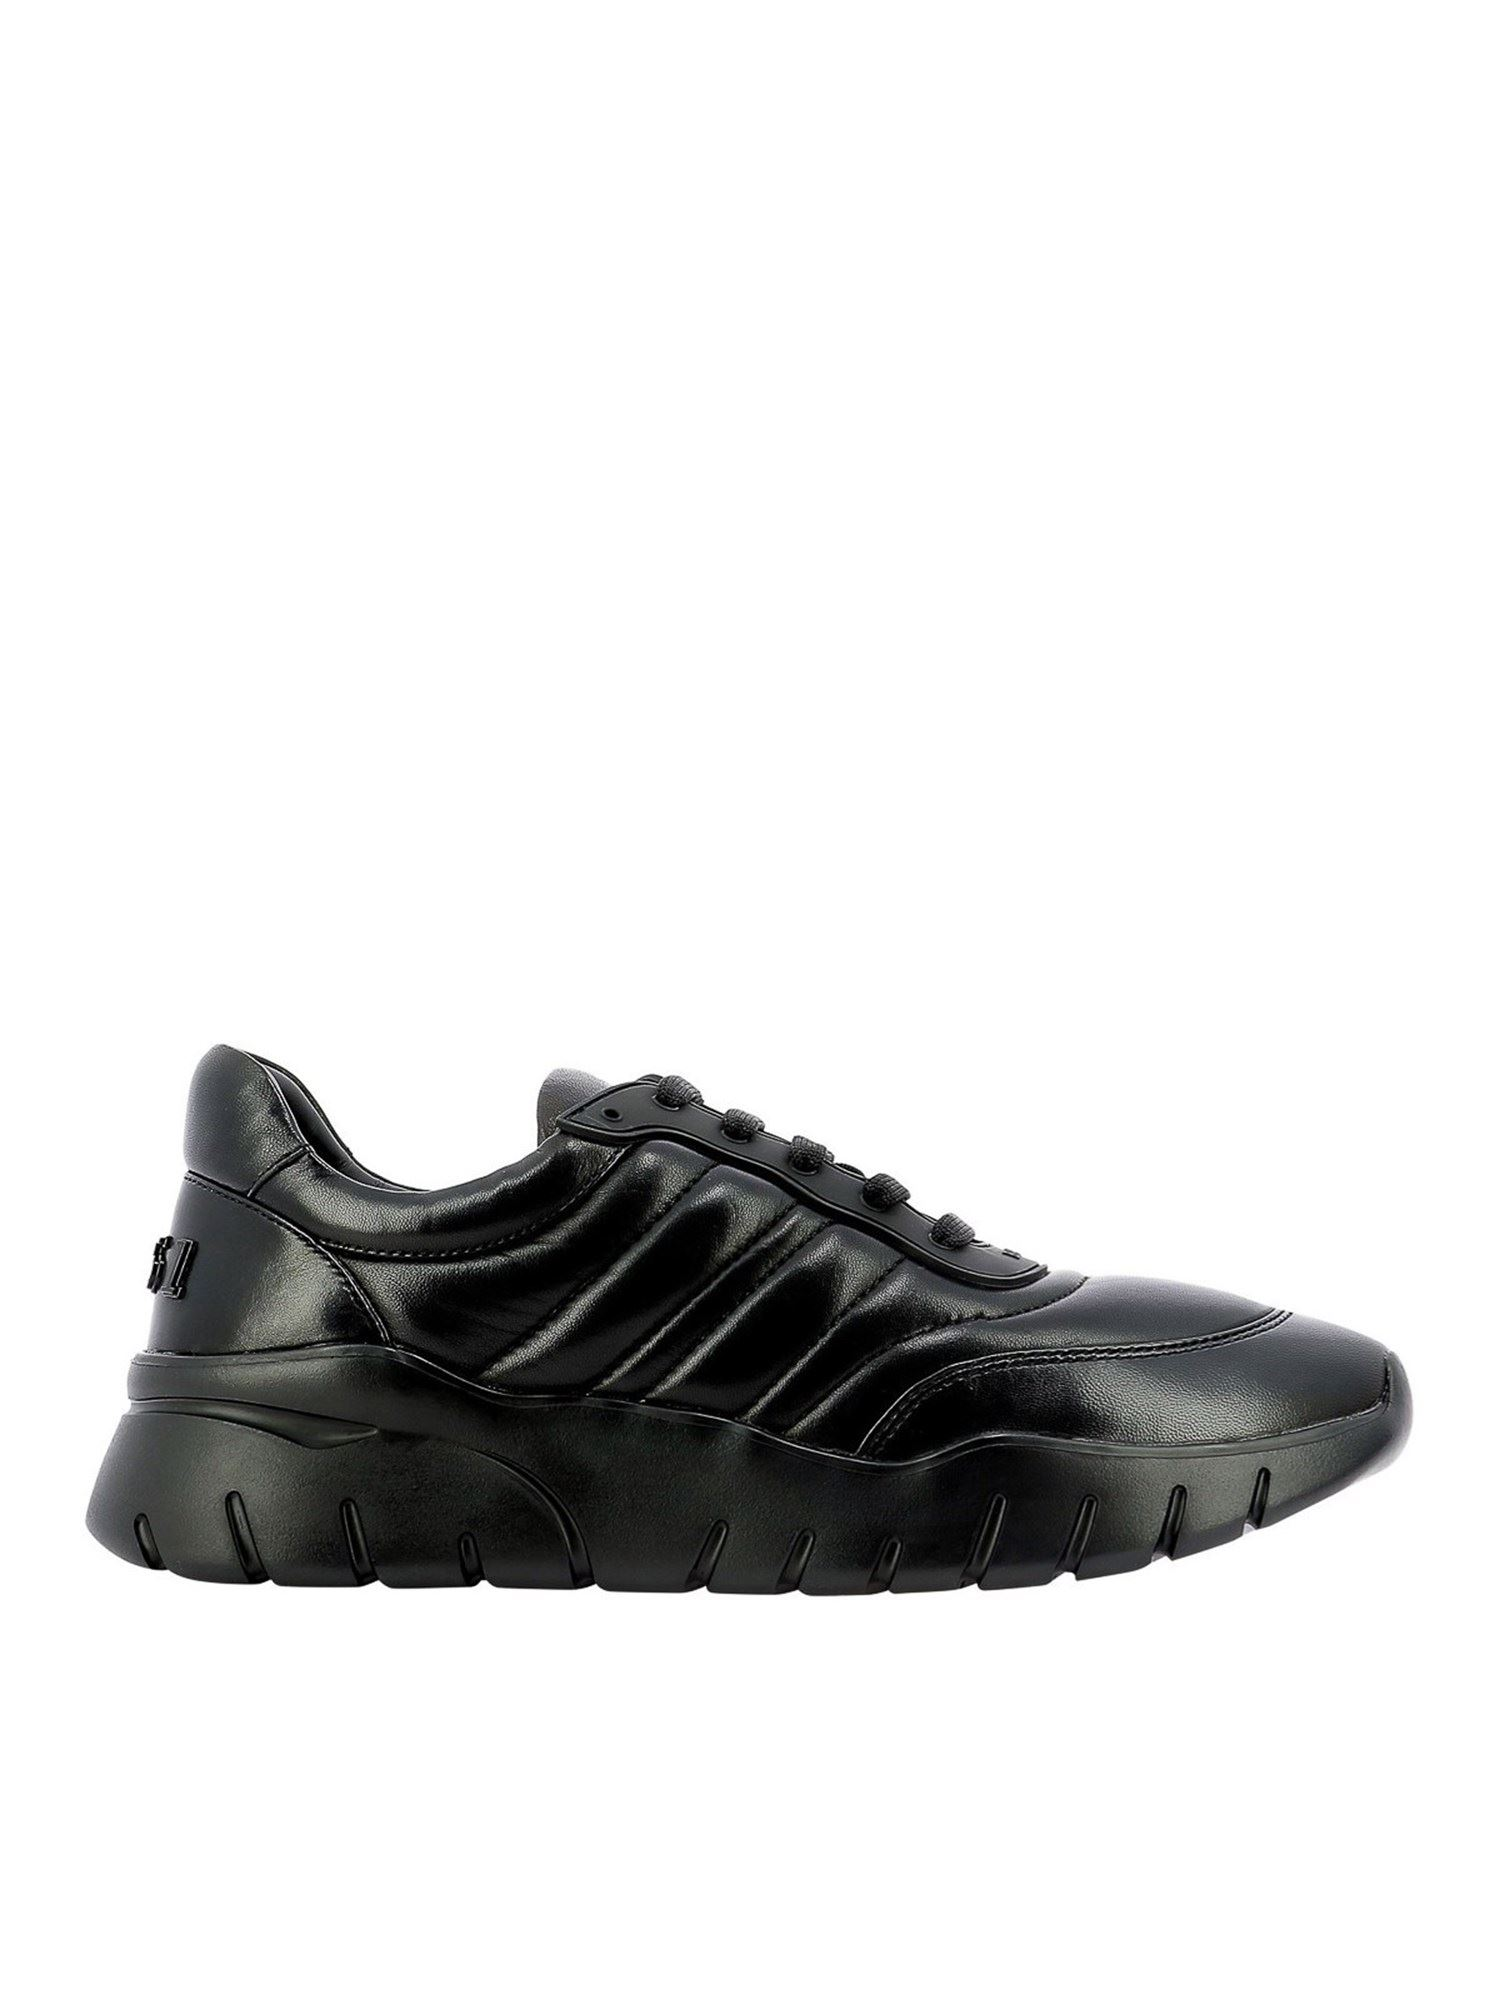 Bally BIKO LEATHER SNEAKERS IN BLACK